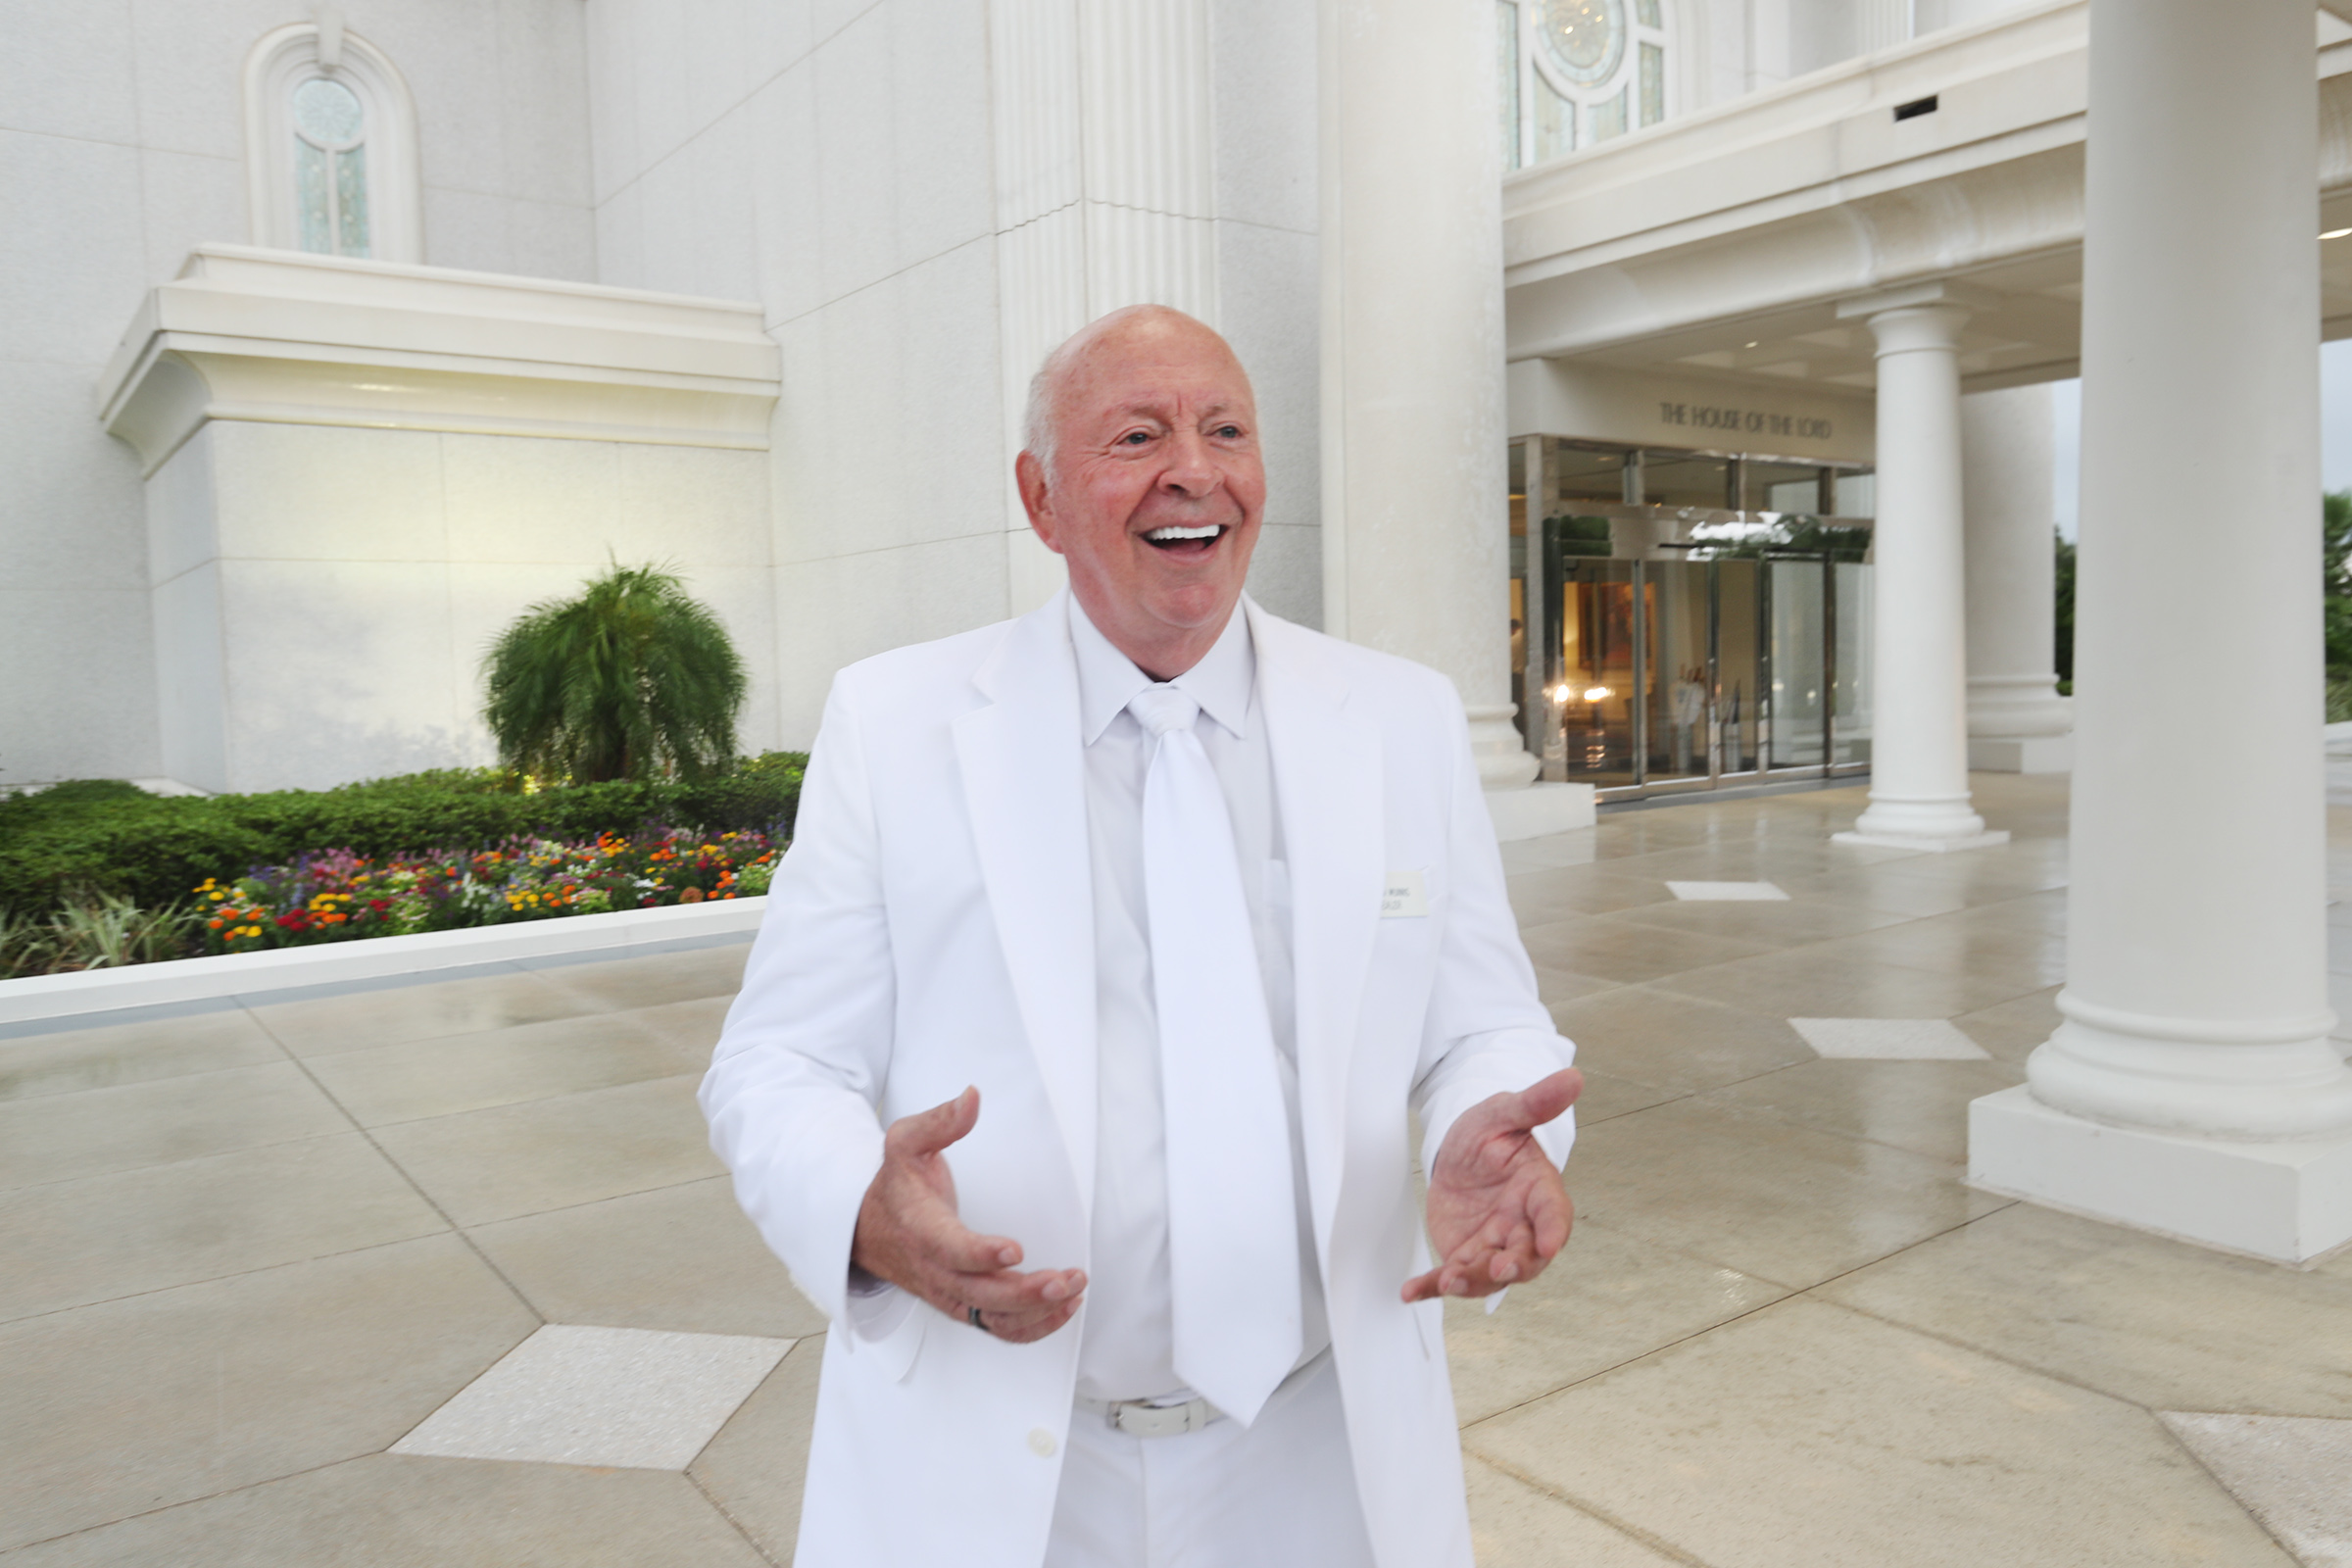 Rulon Munns, an Orlando temple sealer and patriarch talks on Saturday, June 8, 2019 about what it means to have President Russell M. Nelson visit the Orlando area for a devotional.